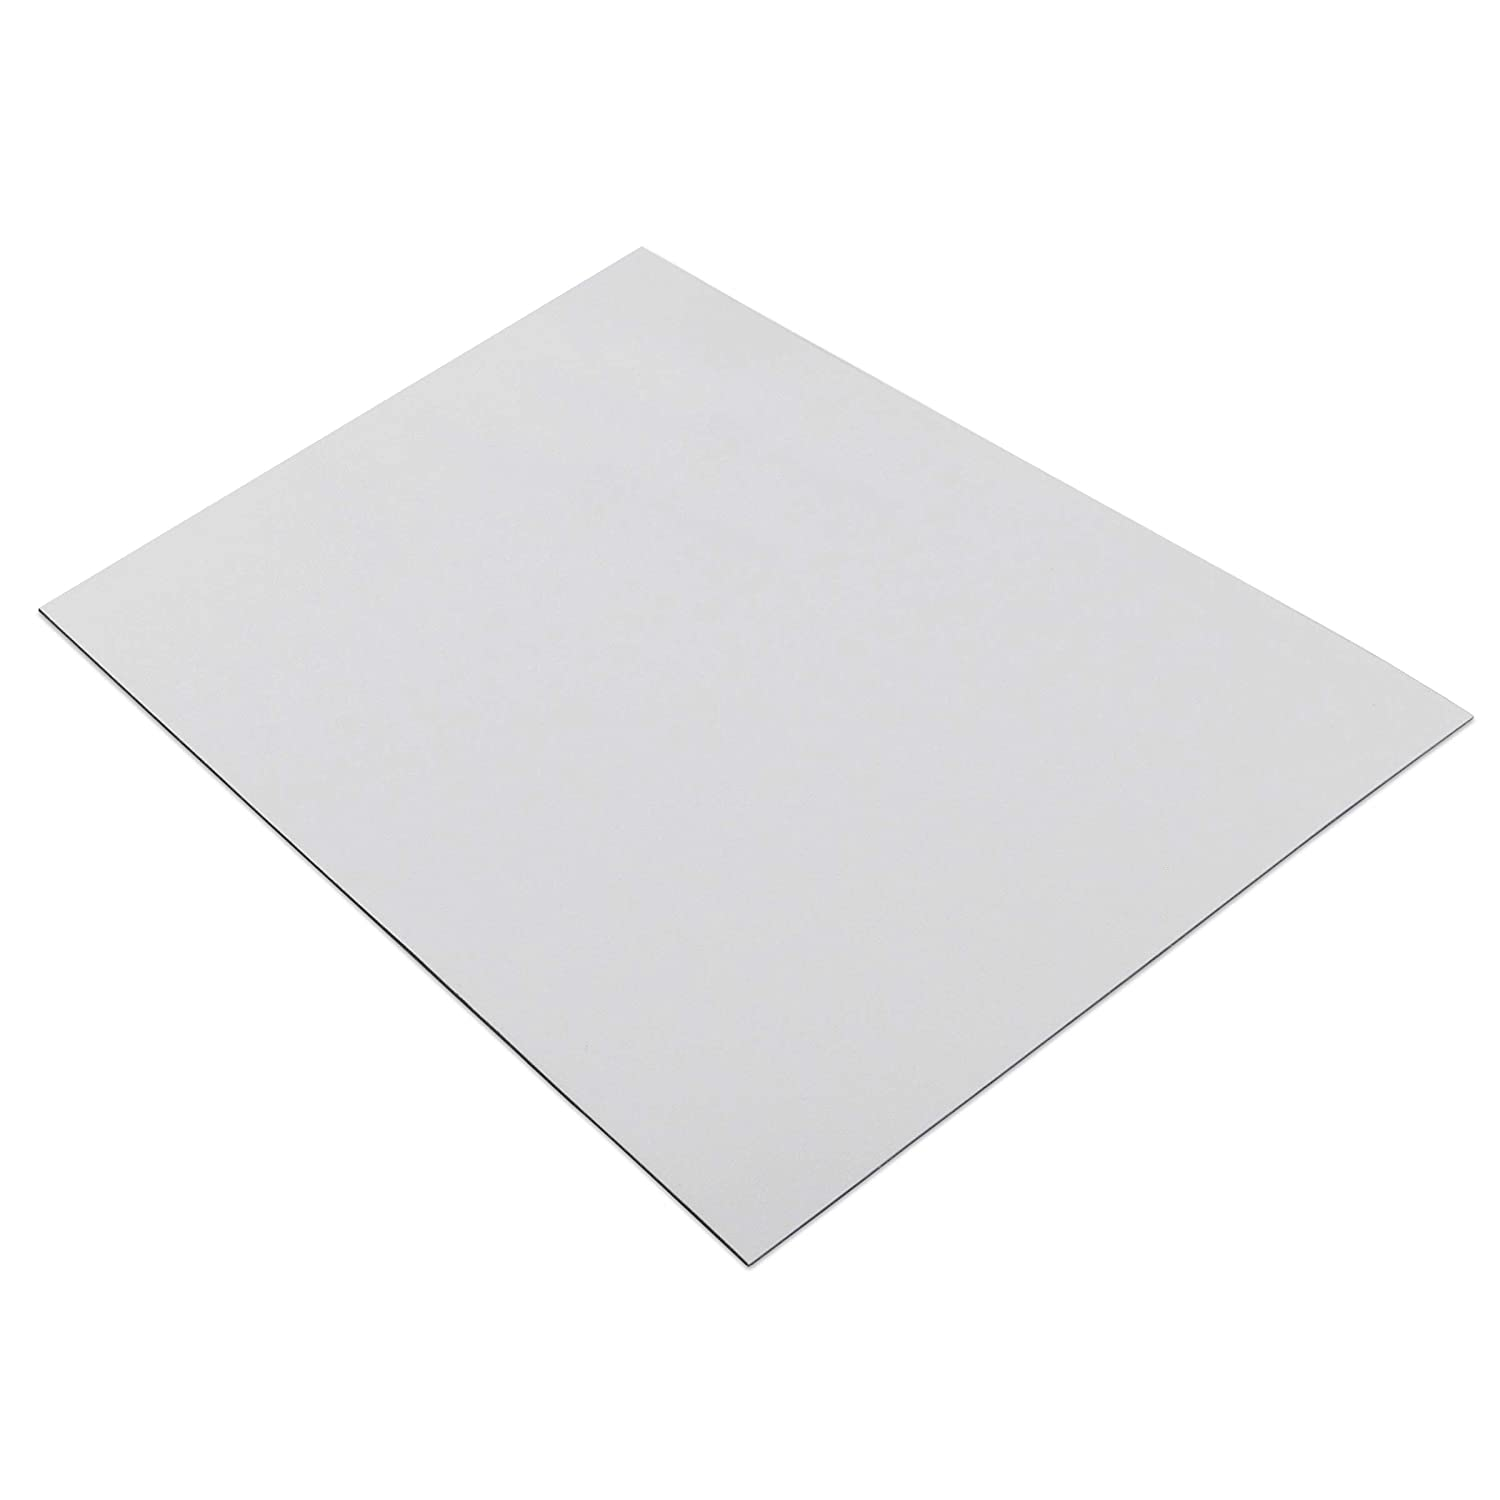 08505 White Vinyl Back 24 Long 12 Wide Master Magnetics Magnet Sheet Magnetic Paper